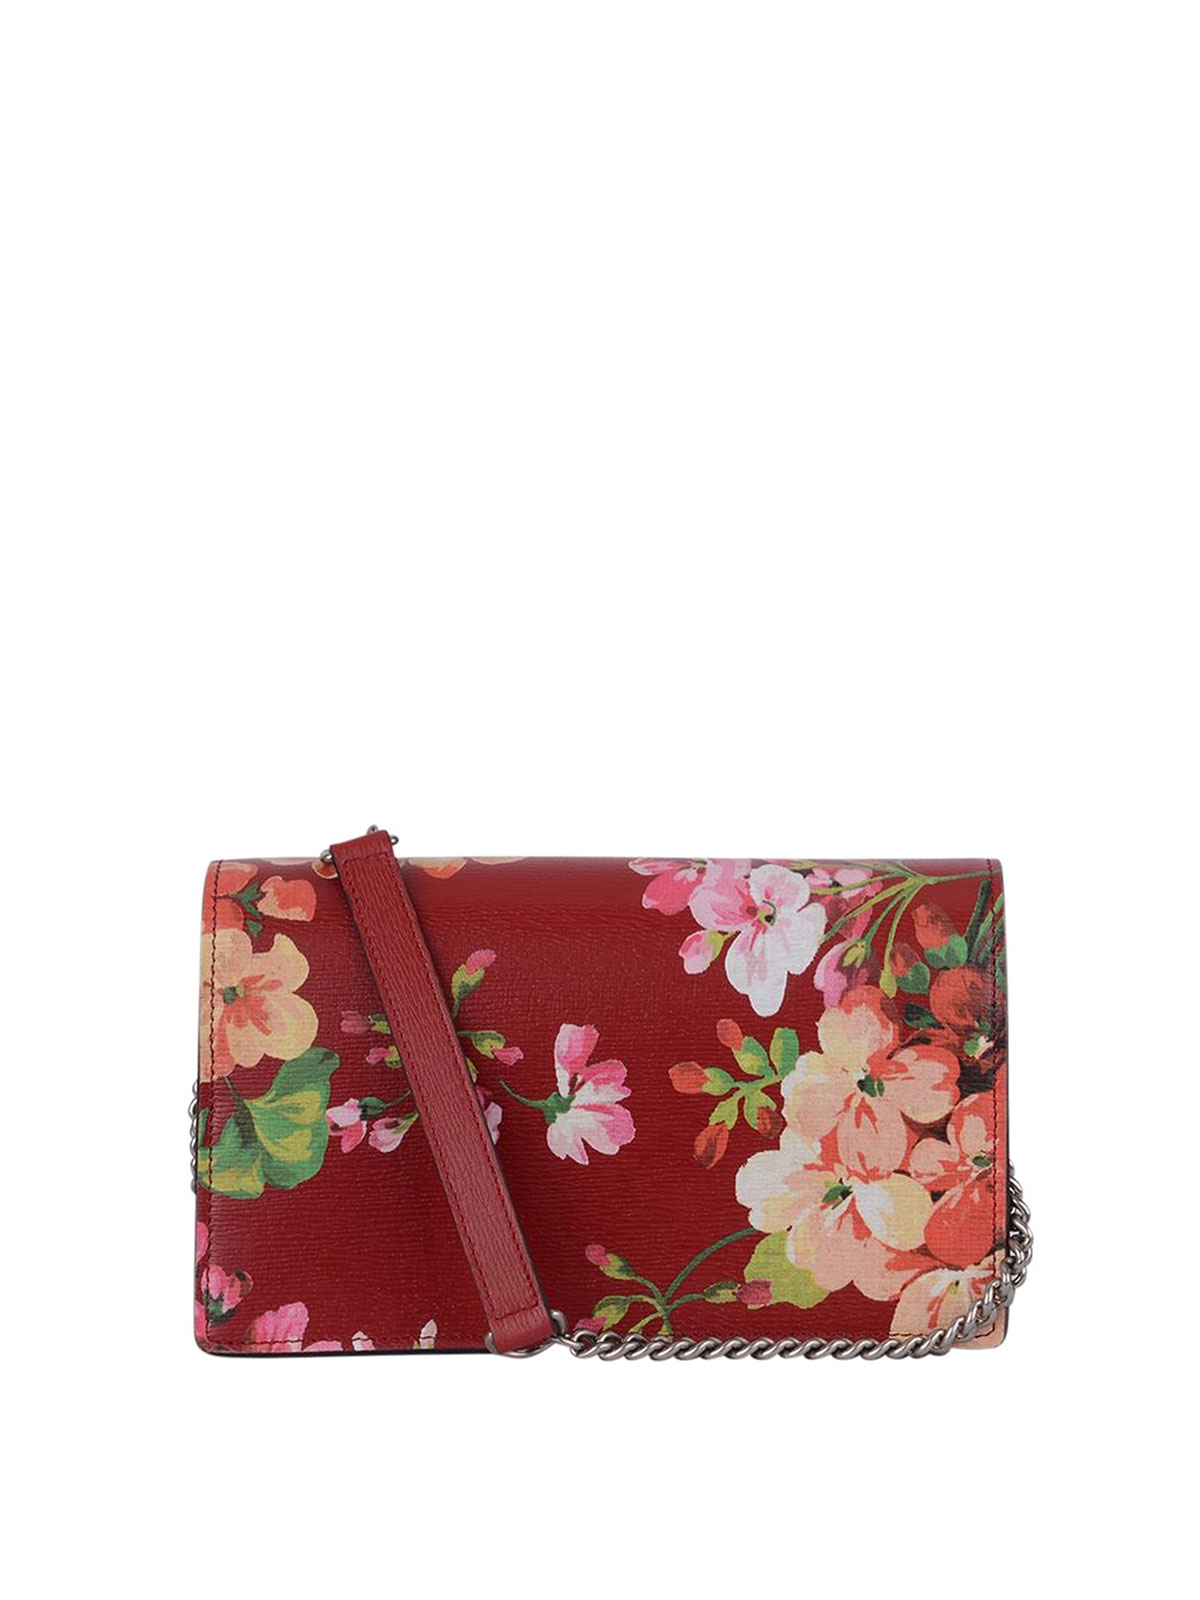 2caf4e75b66 Gucci - Blooms print chain clutch - clutches - 410114 CWB1N 6469